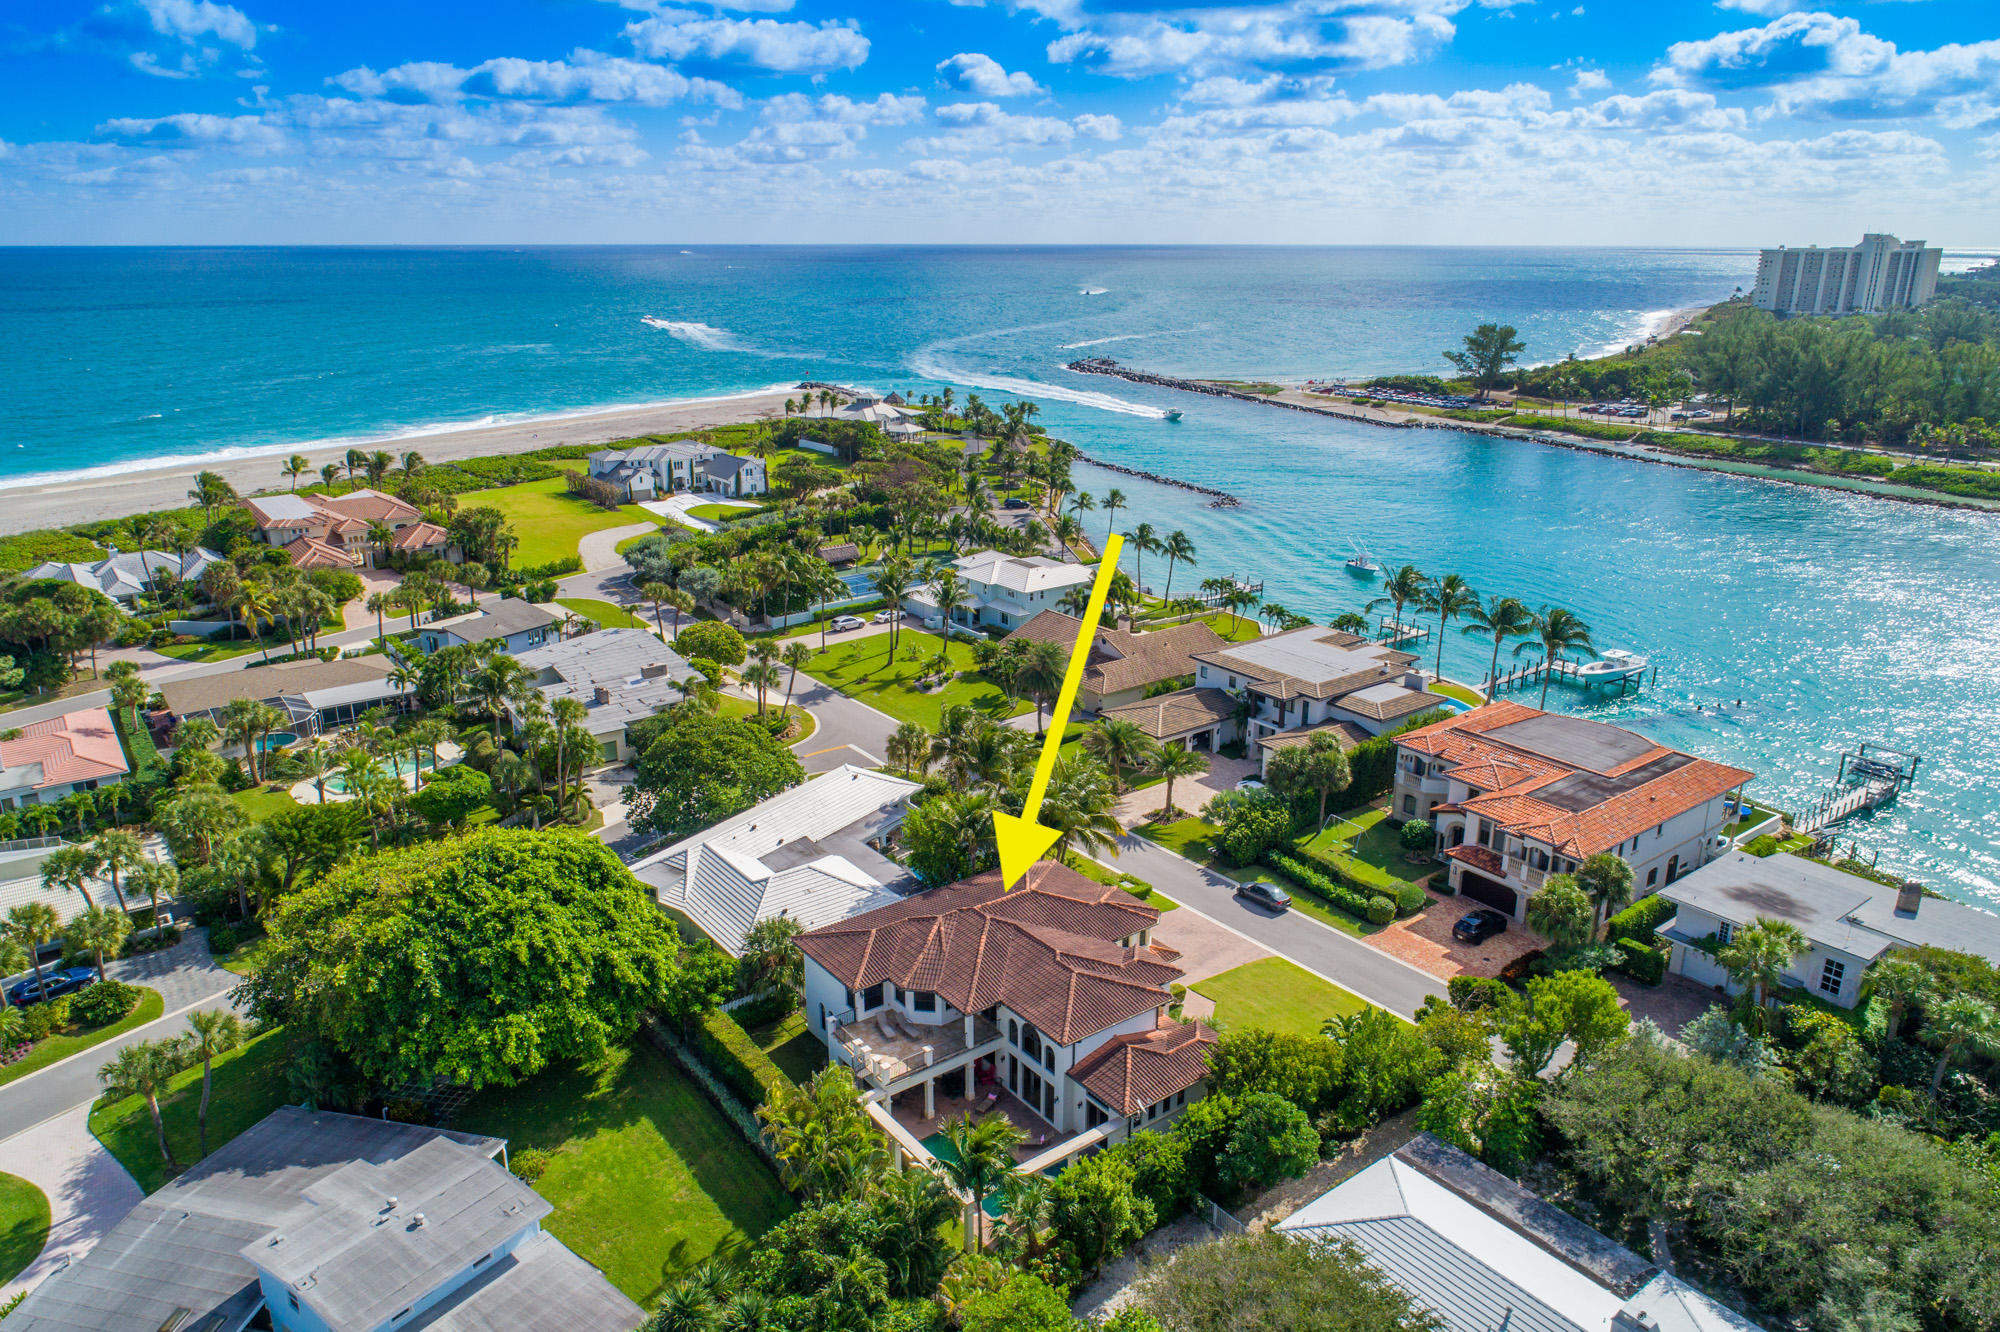 New Home for sale at 136 Lighthouse Drive in Jupiter Inlet Colony